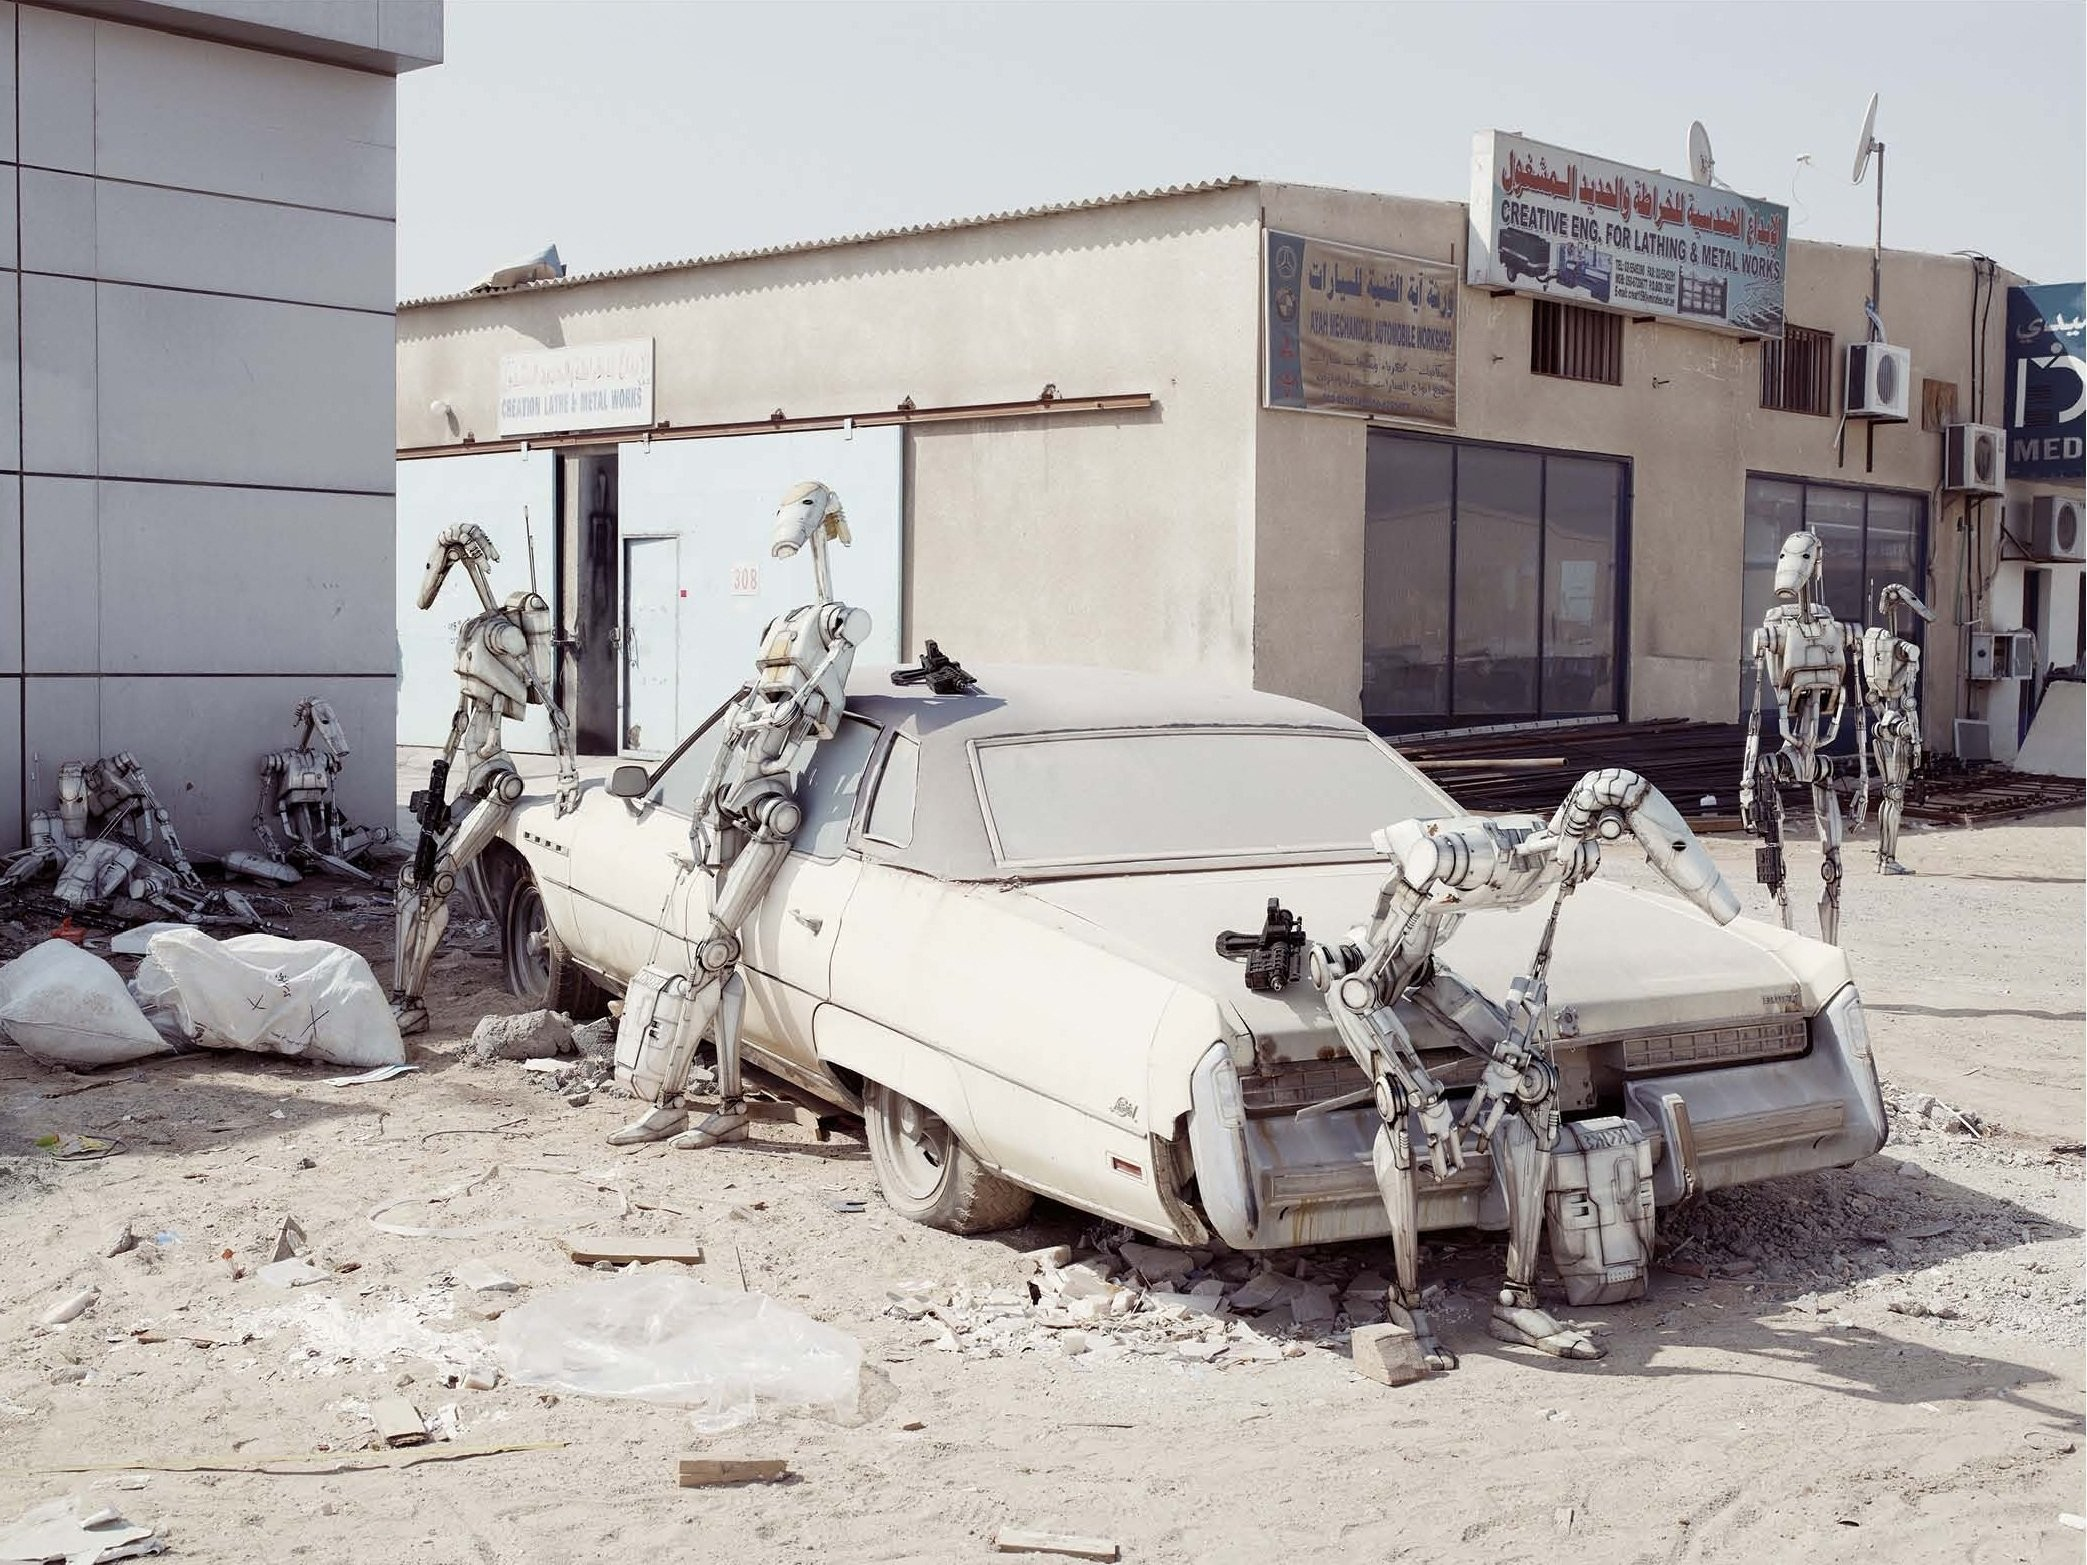 General 2087x1565 robot old car Dubai photo manipulation Star Wars Star Wars Droids Trade Federation (Star Wars) car wreck urban